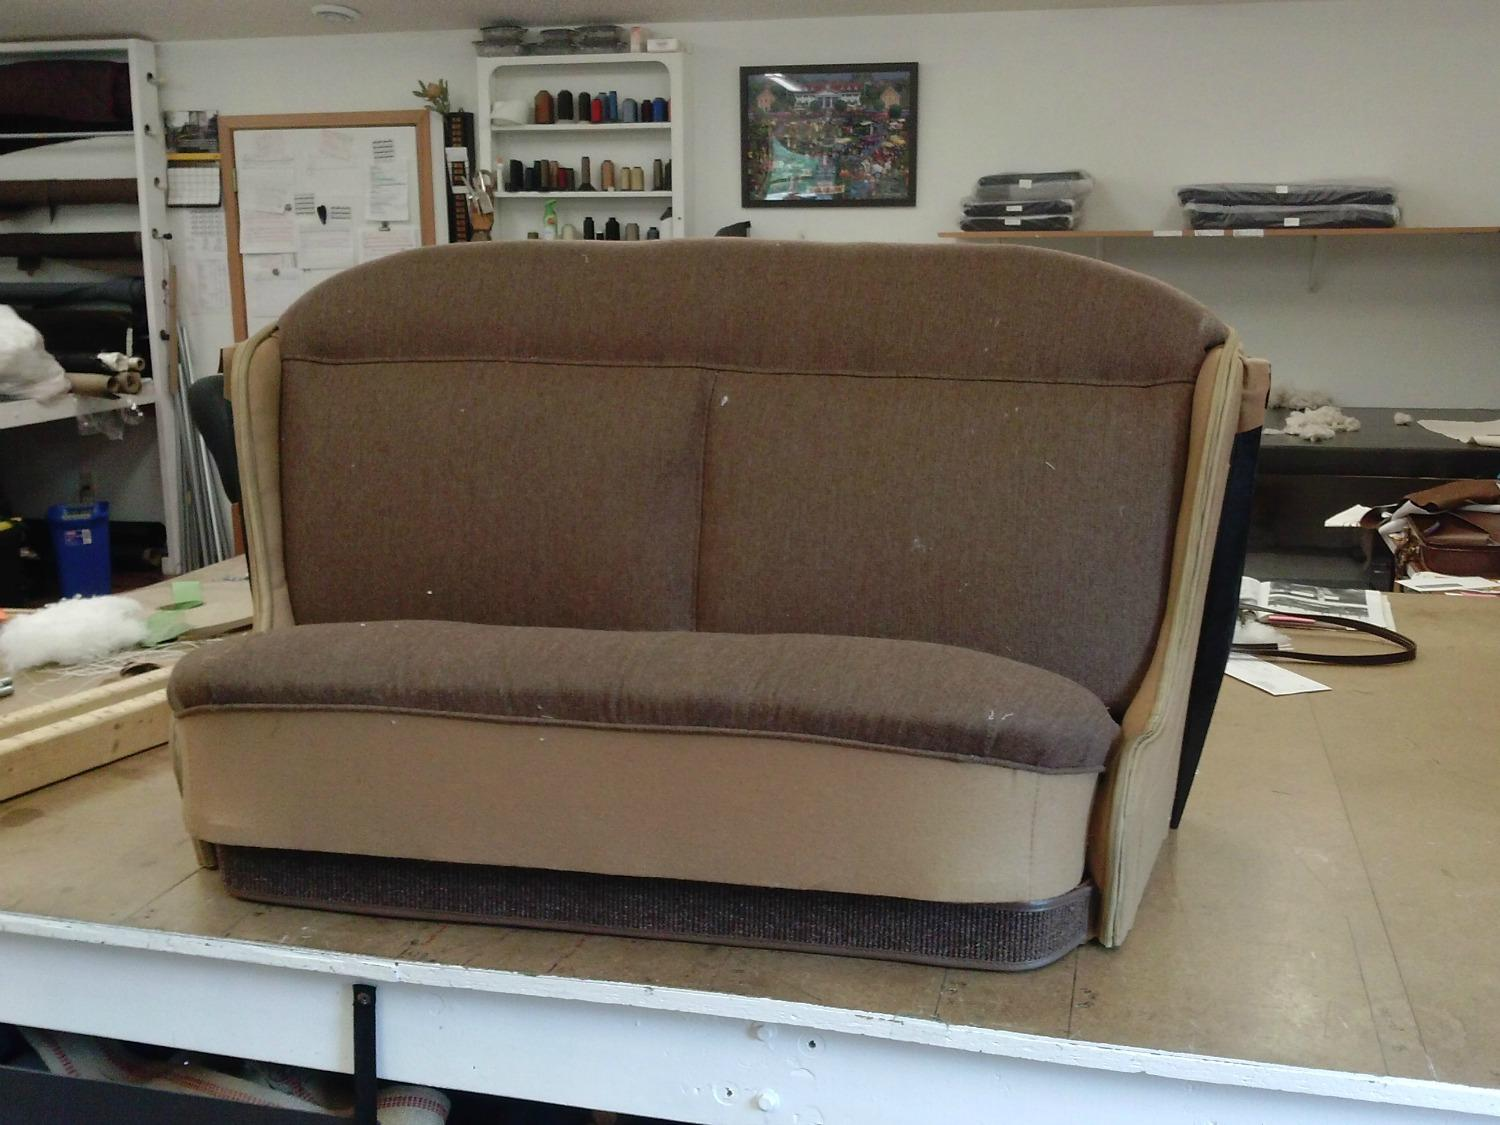 Model A Seat and Backrest 1500